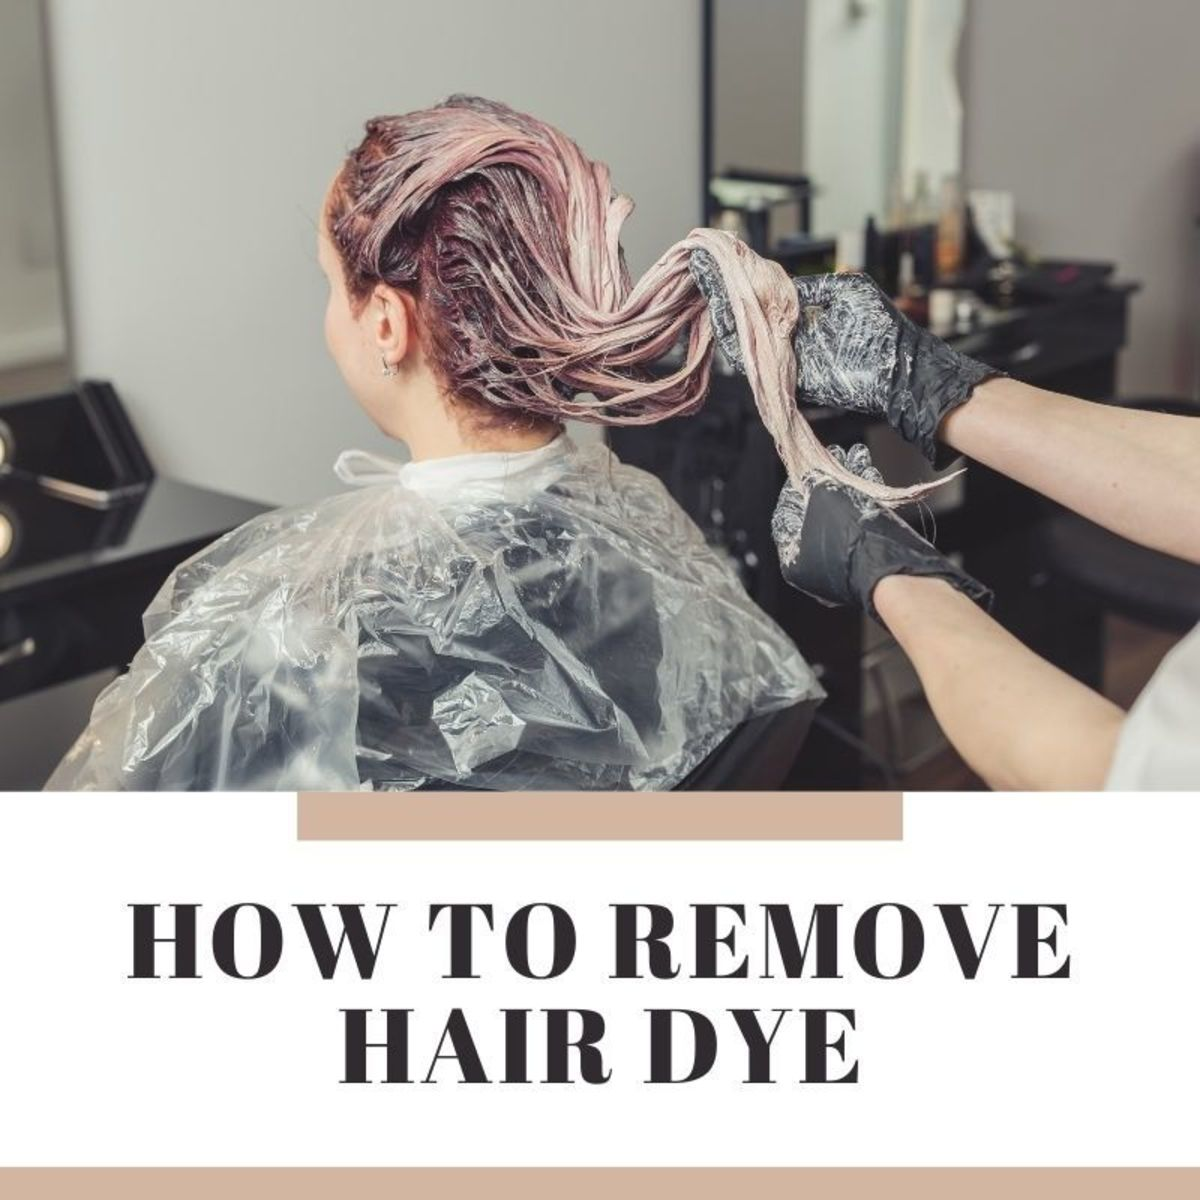 If you're trying to change your look, dying your hair is one of the quickest ways, but removing it can be tricky.